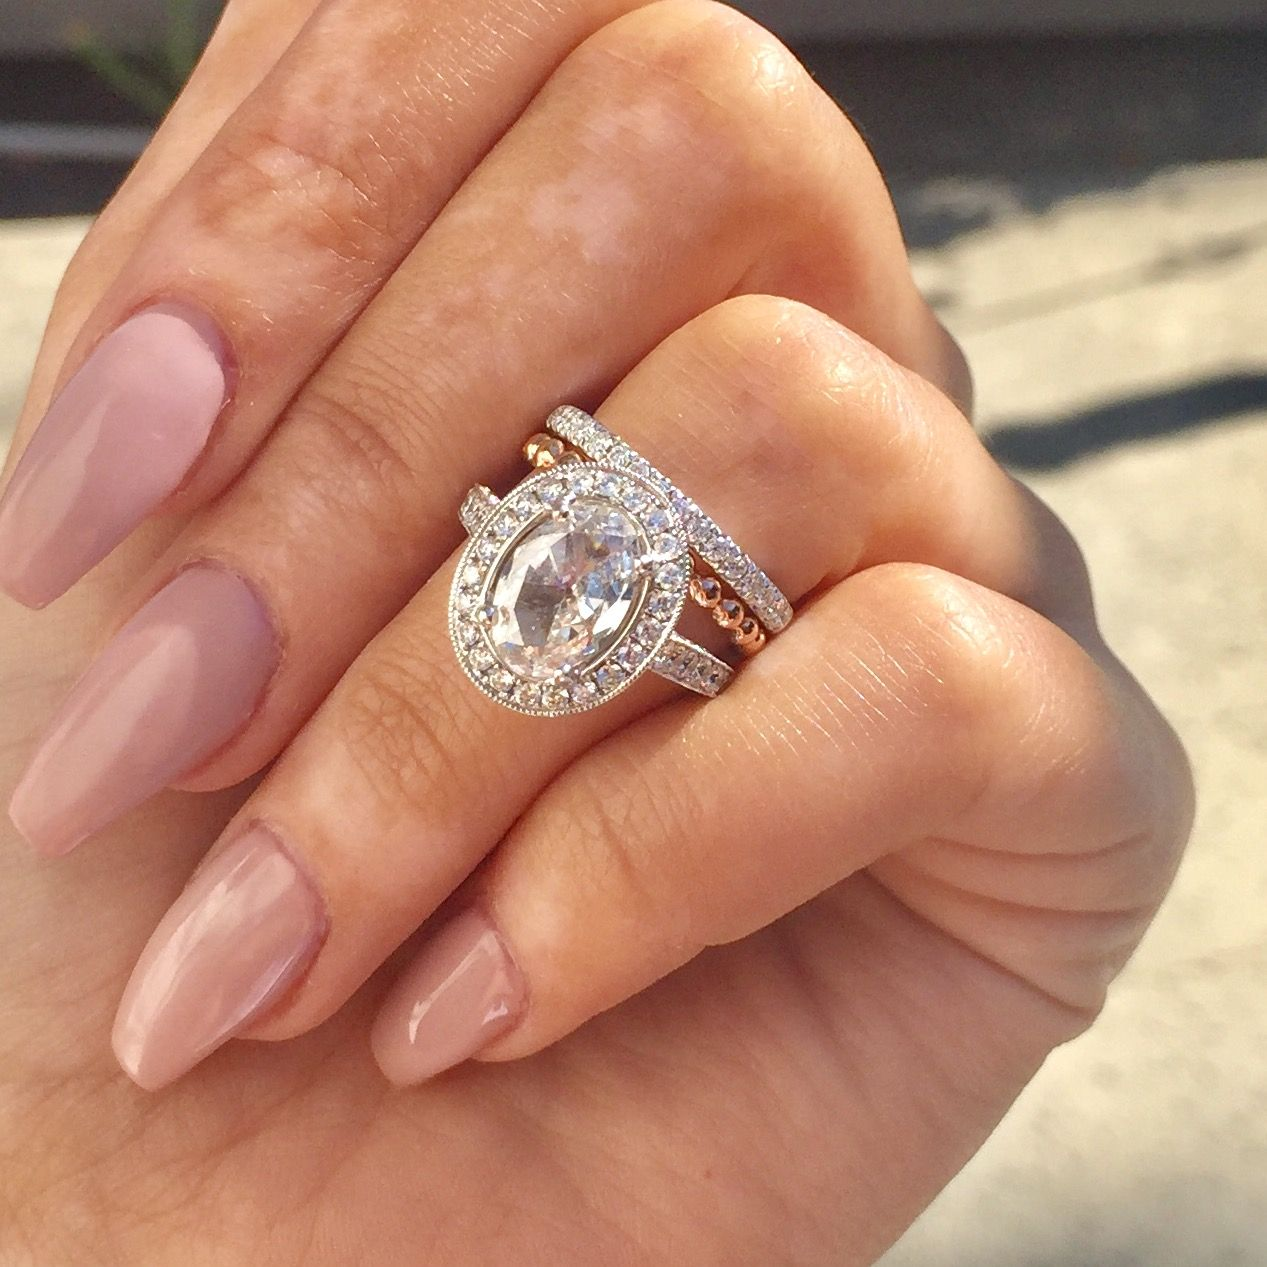 Oval Vintage style diamond engagement ring with milgrain halo